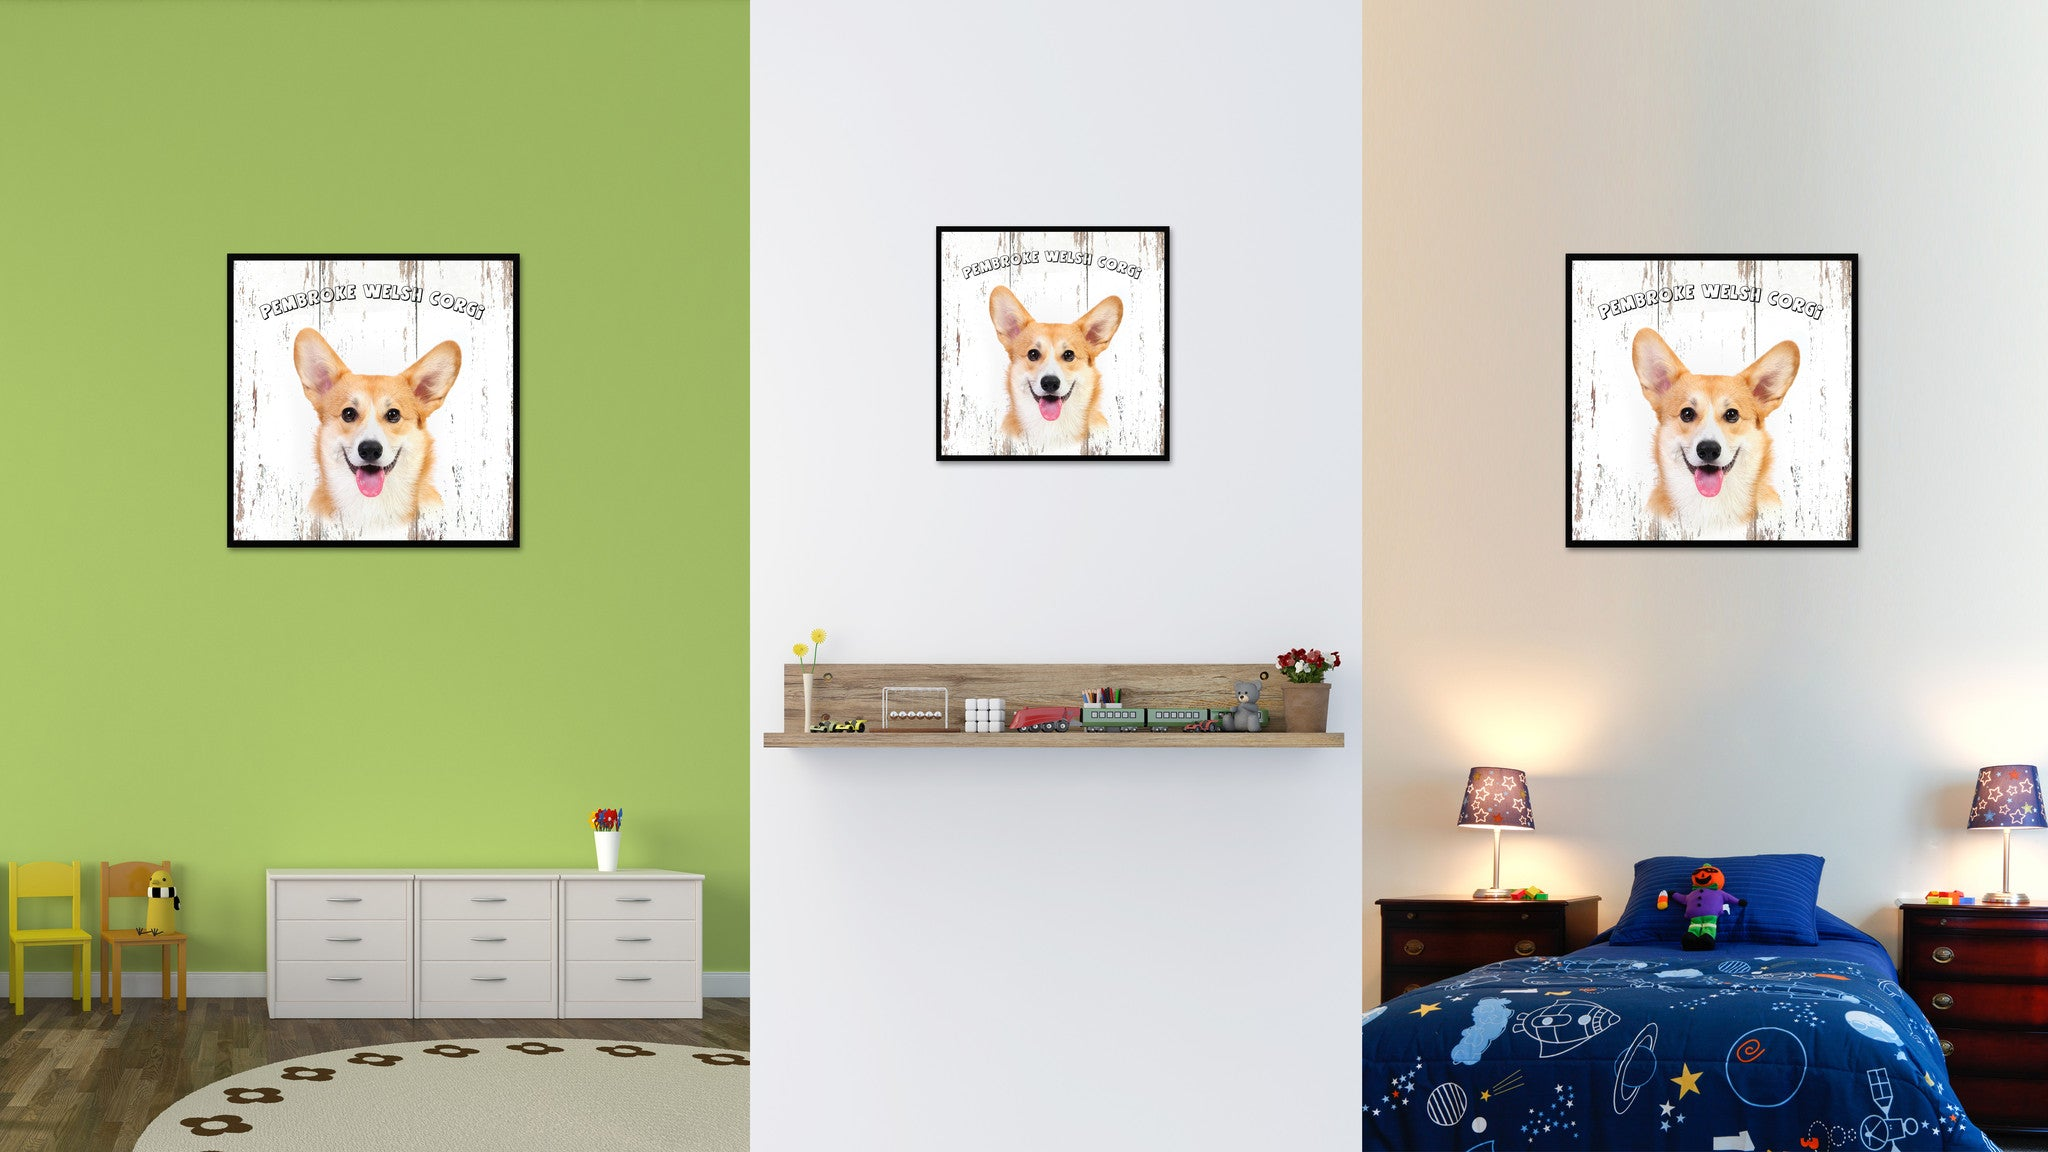 Pembroke Welsh Corgi Dog Canvas Print Picture Frame Gift Home Decor Wall Art Decoration